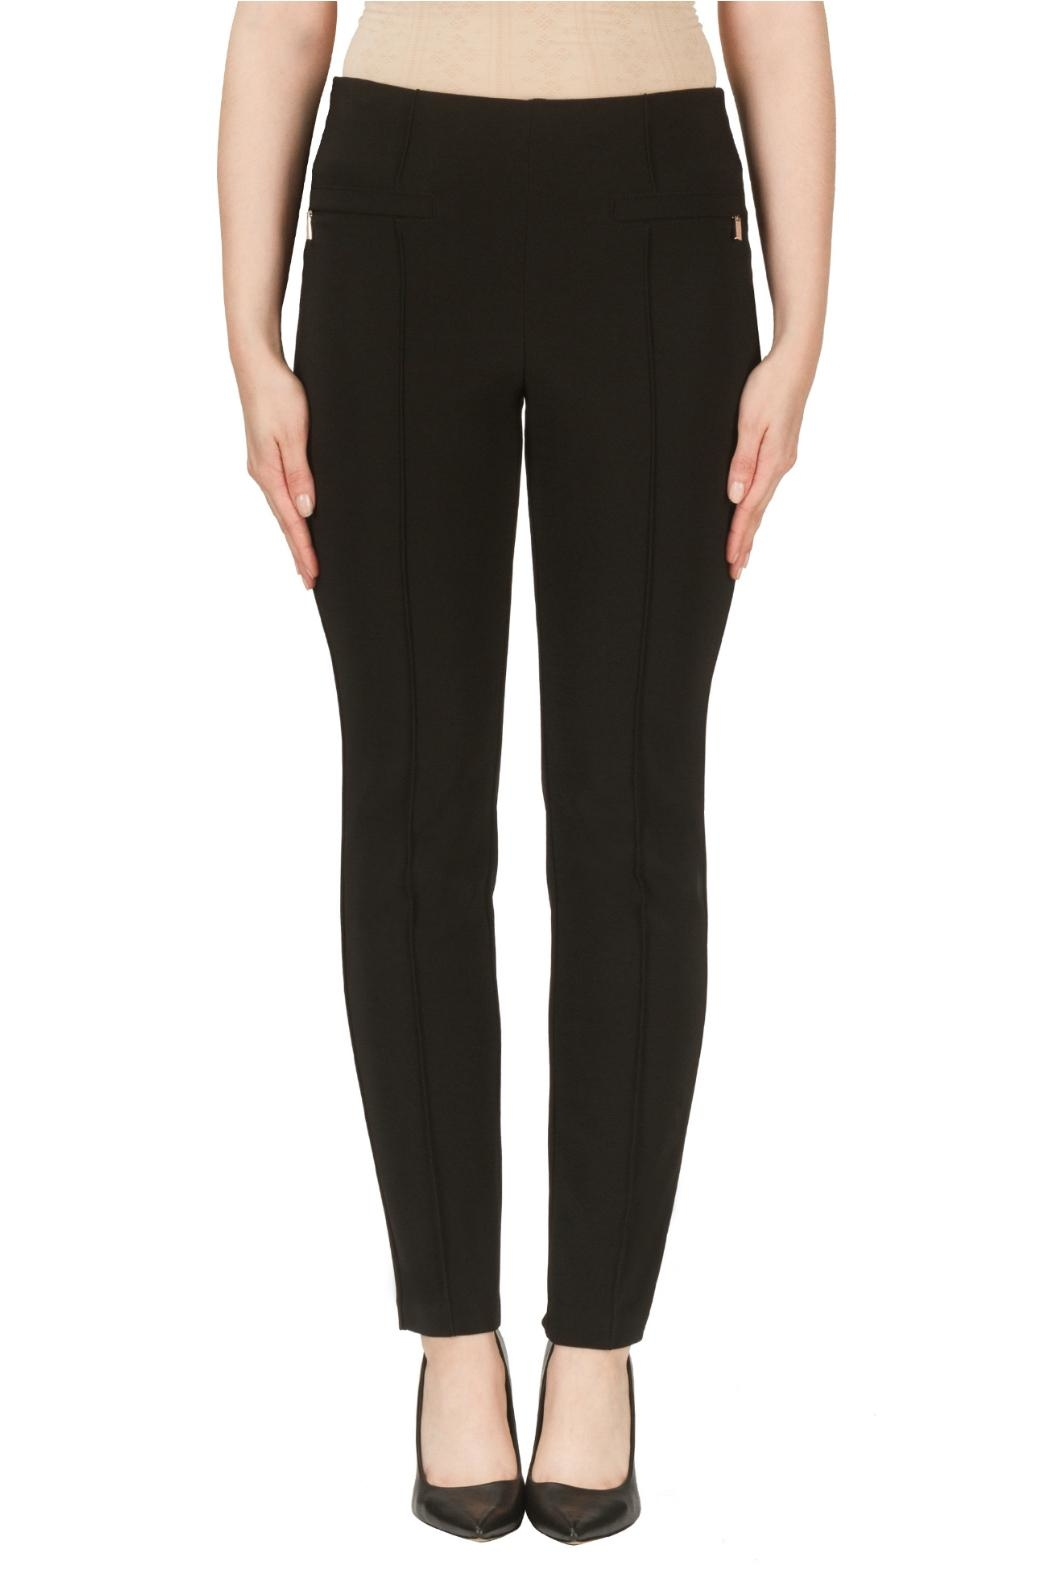 Joseph Ribkoff Zipper Pleated Pant - Front Cropped Image